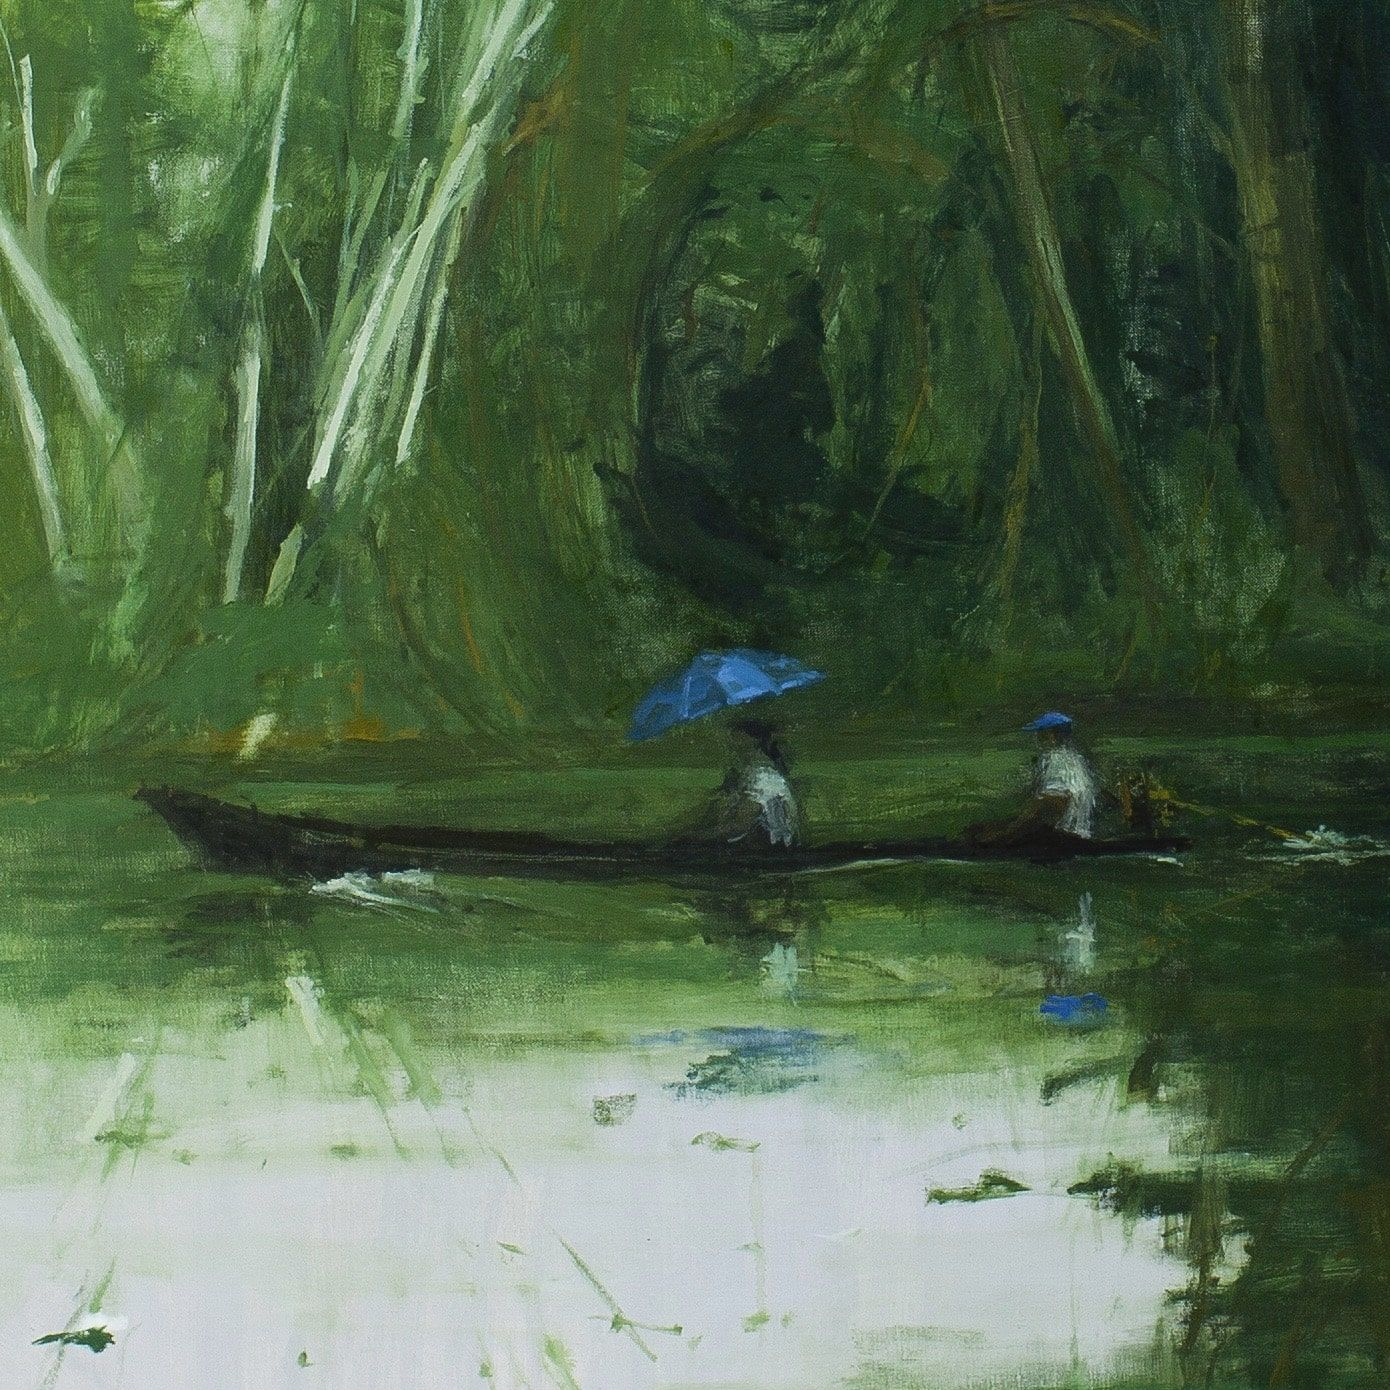 En naviguant de Leticia à Santa Rosa, série Jungle,Calo  Carratalá,Peinture contemporaine, detail 4